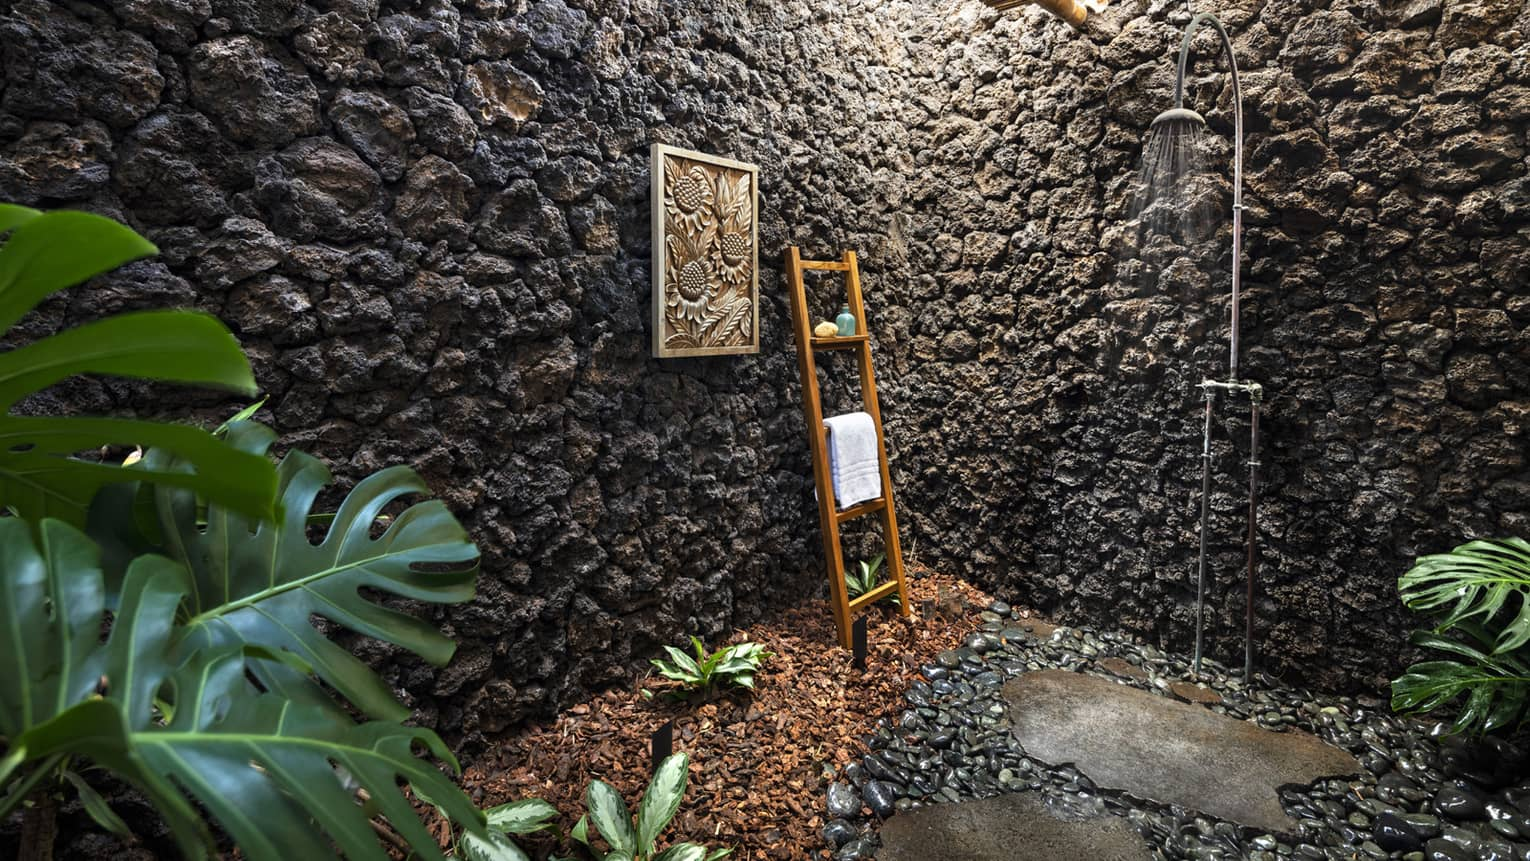 Outdoor shower with stone walls, teak ladder holding towel, greenery